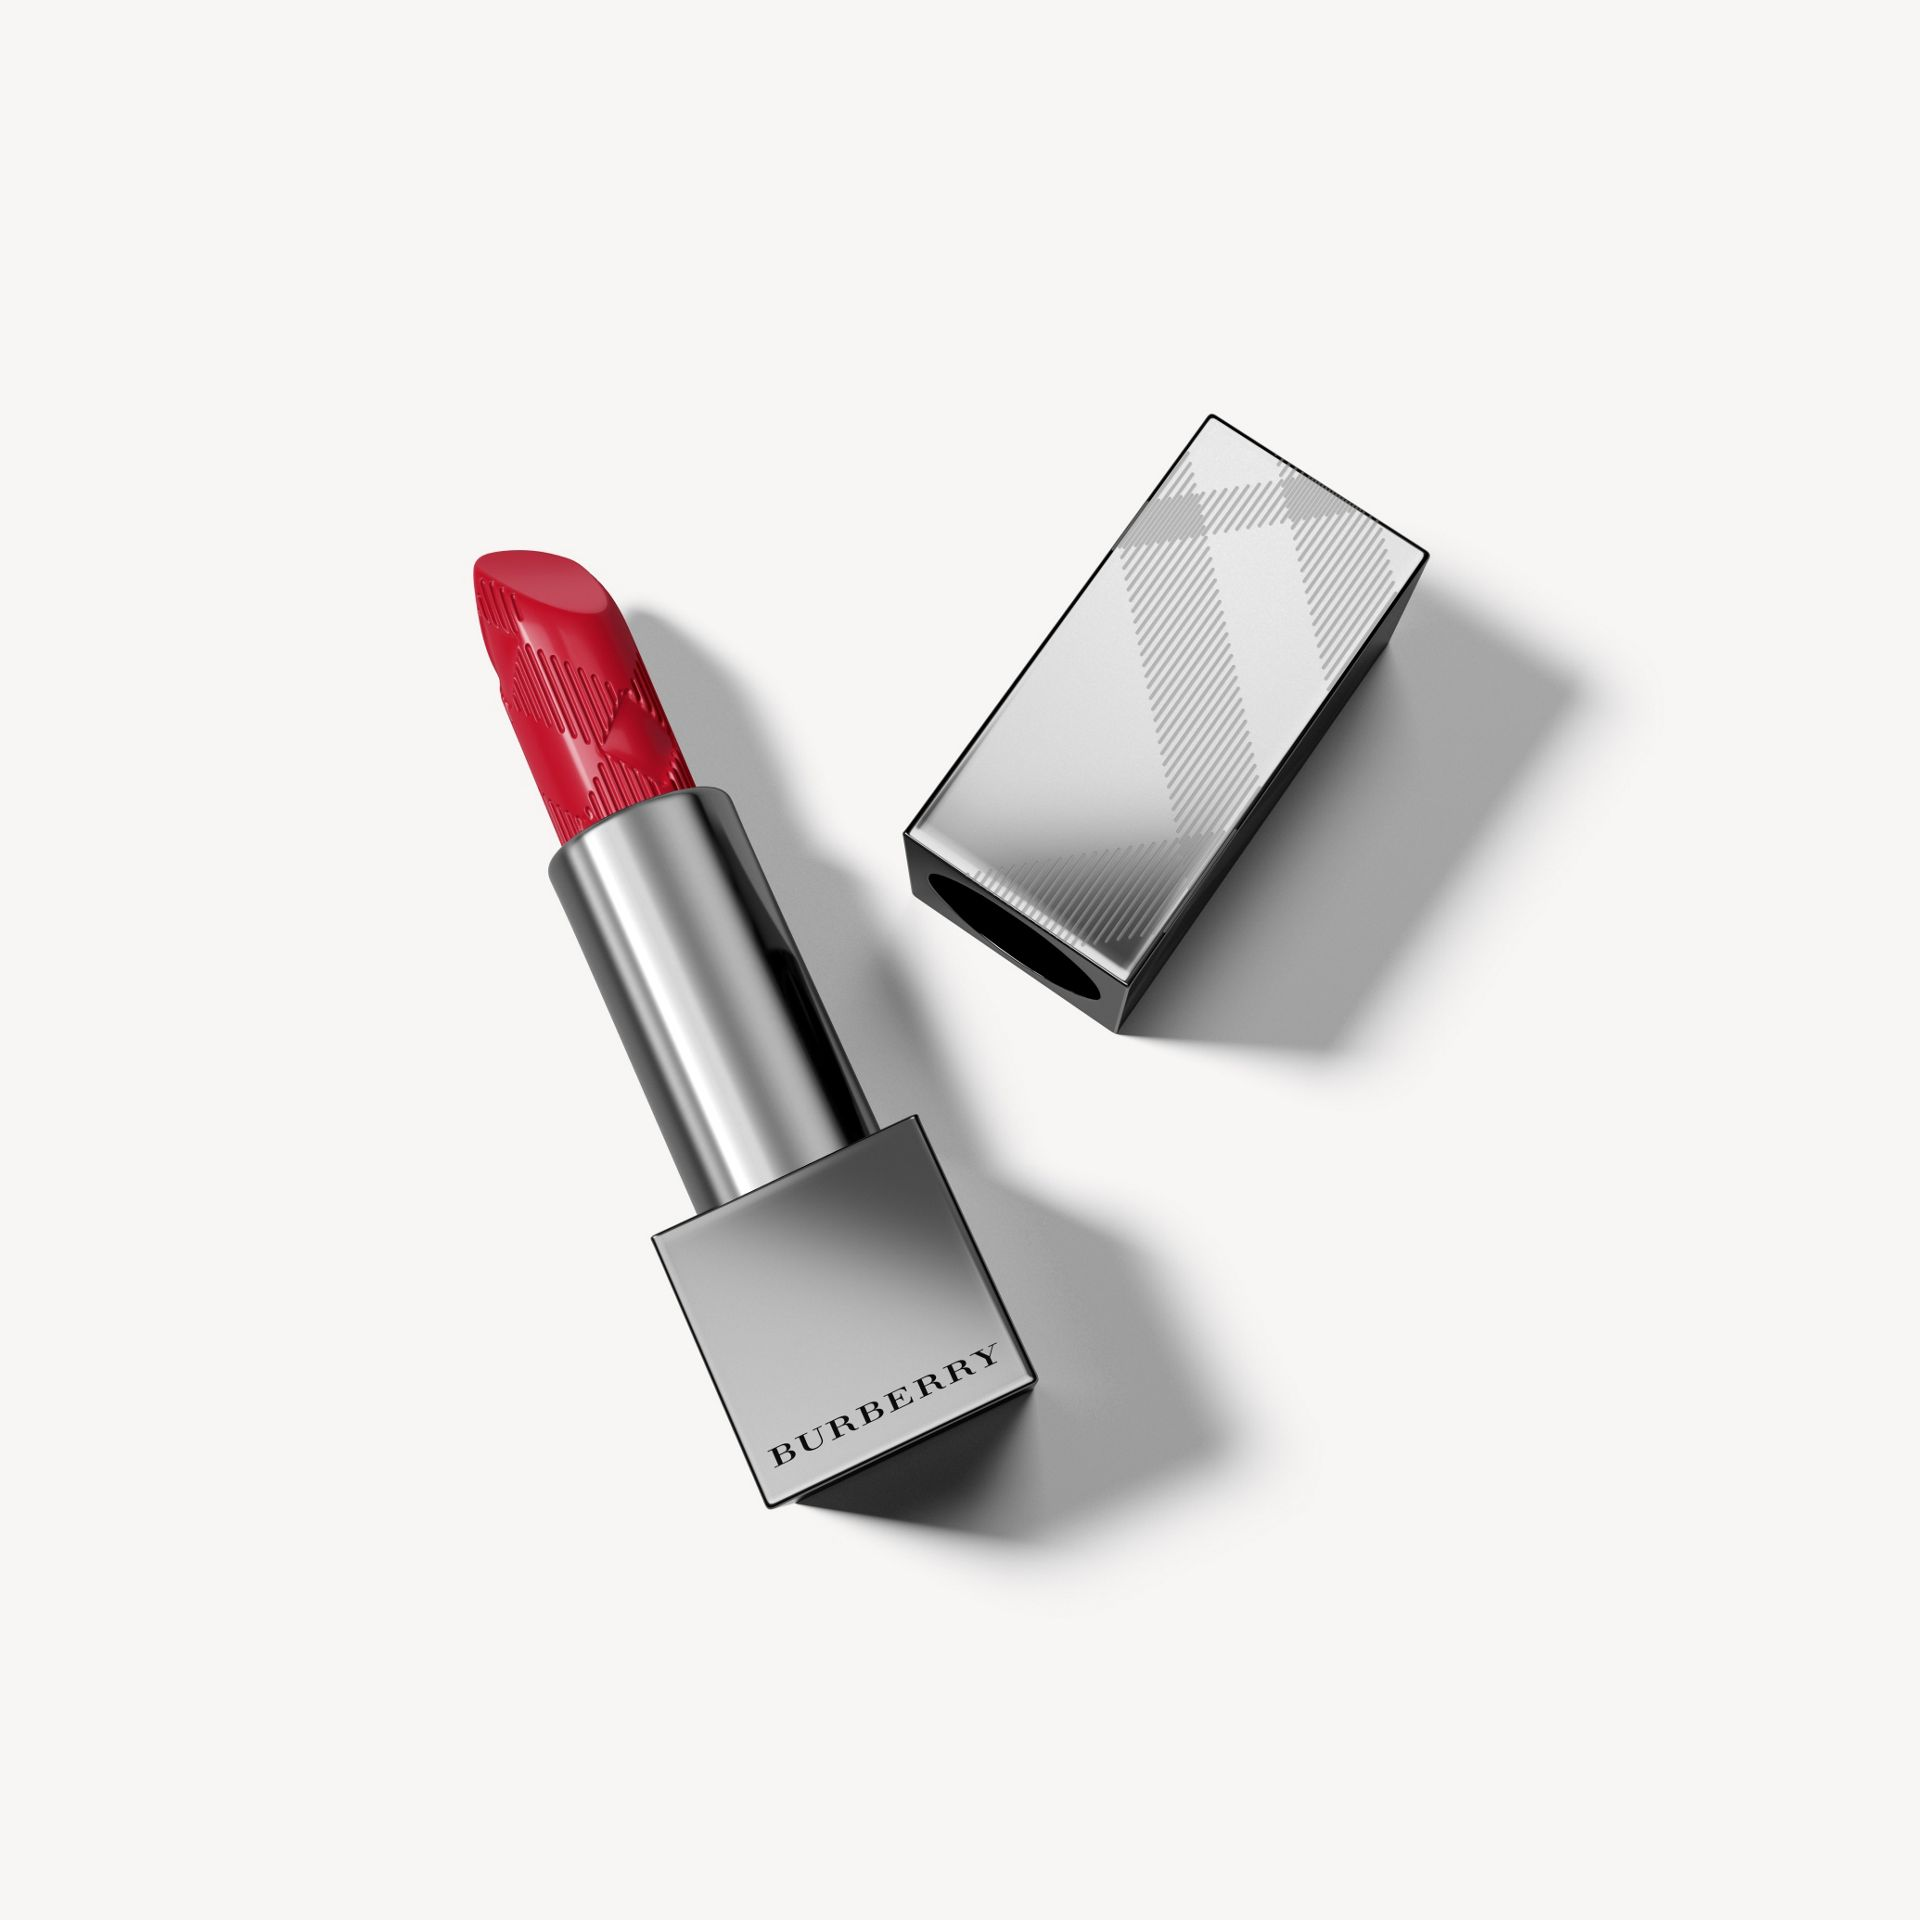 Batom Burberry Kisses – Poppy Red No.105 - galeria de imagens 1